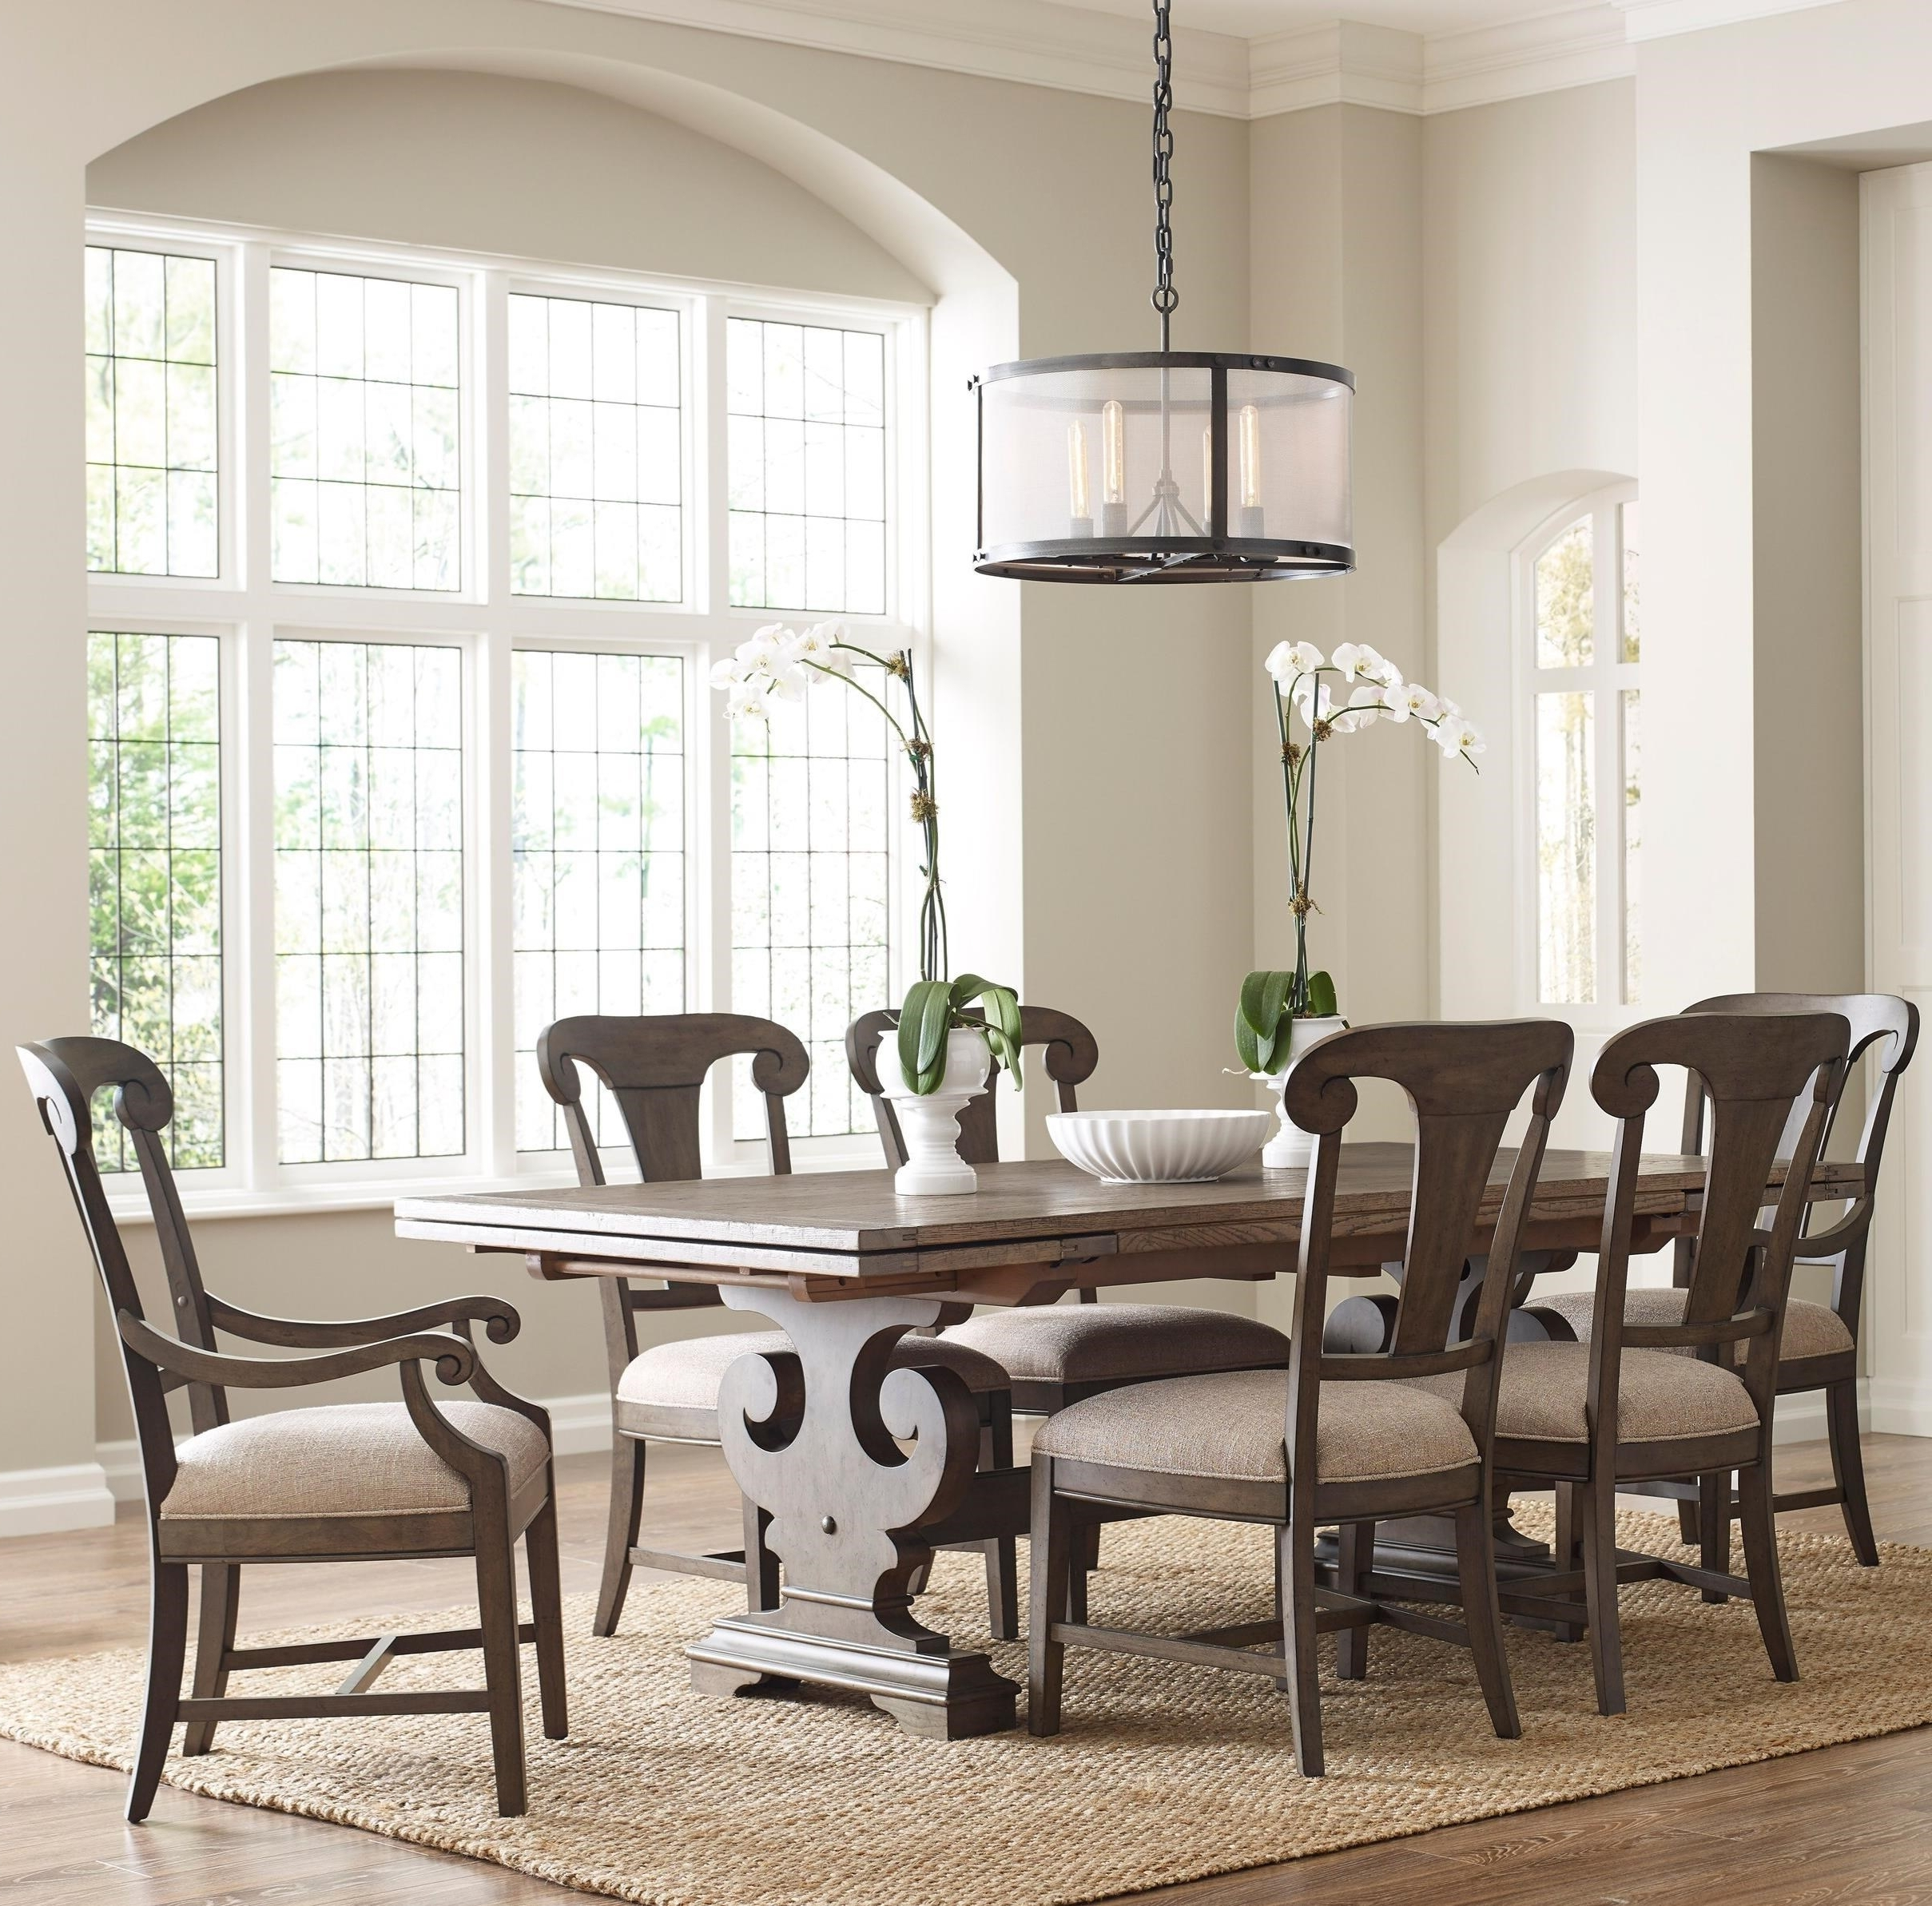 Crawford 7 Piece Rectangle Dining Sets With Regard To Latest Seven Piece Dining Set With Crawford Refectory Table And Fulton (Gallery 11 of 25)